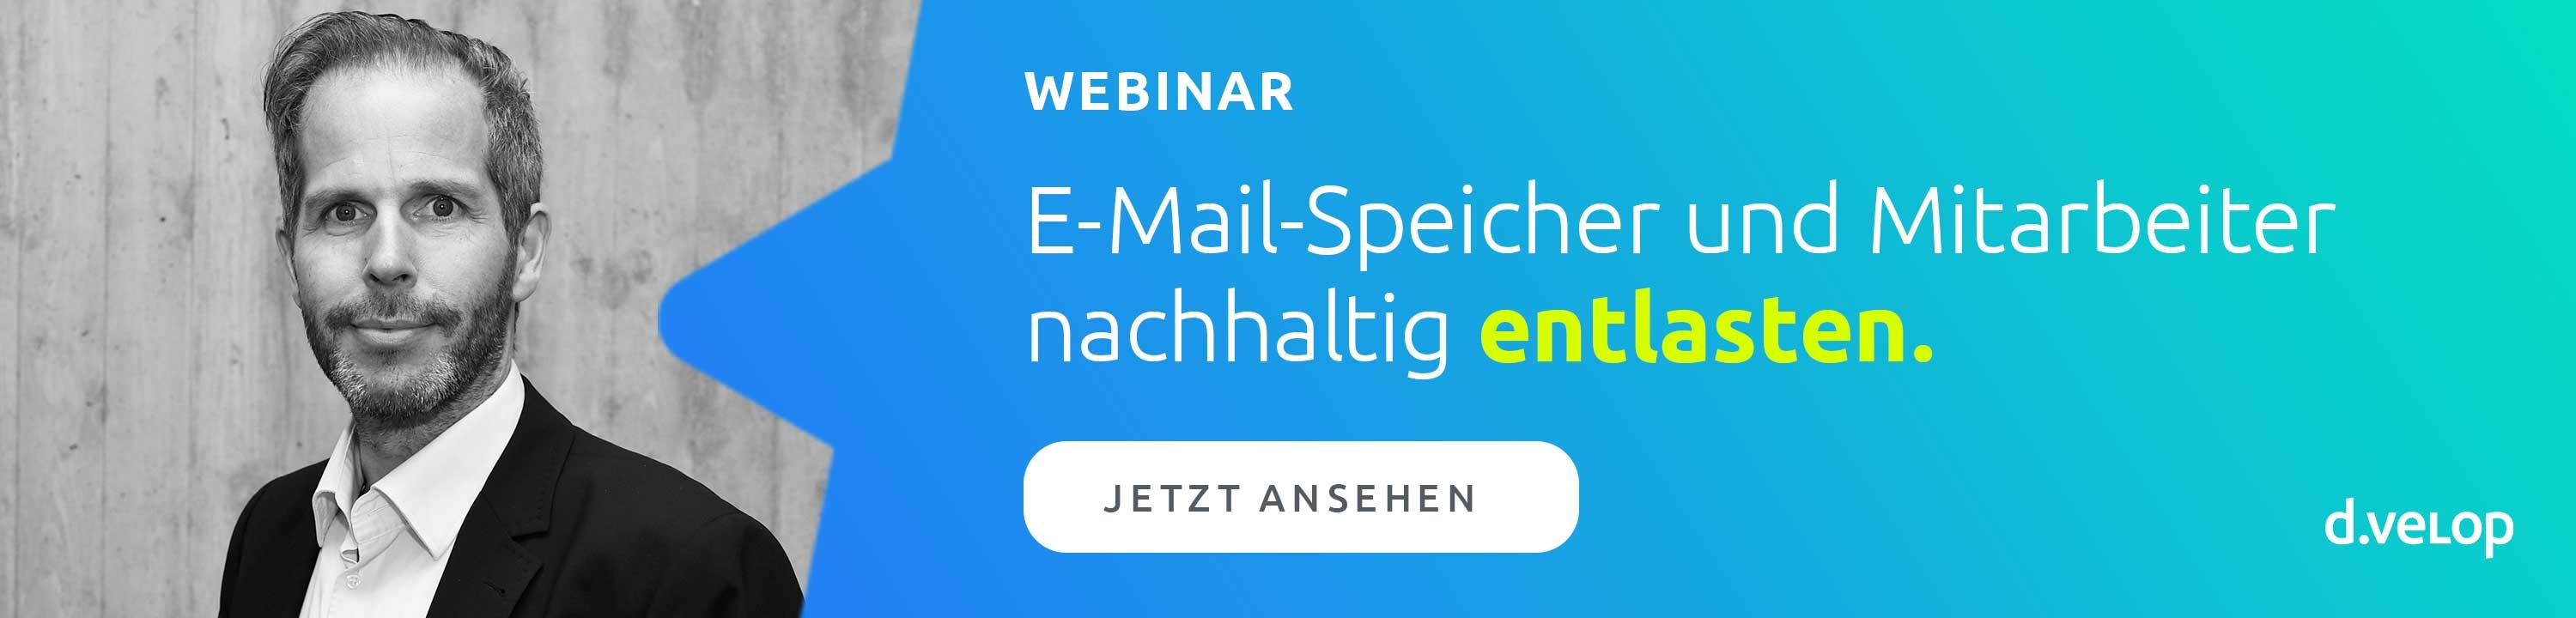 Neuer Call-to-Action